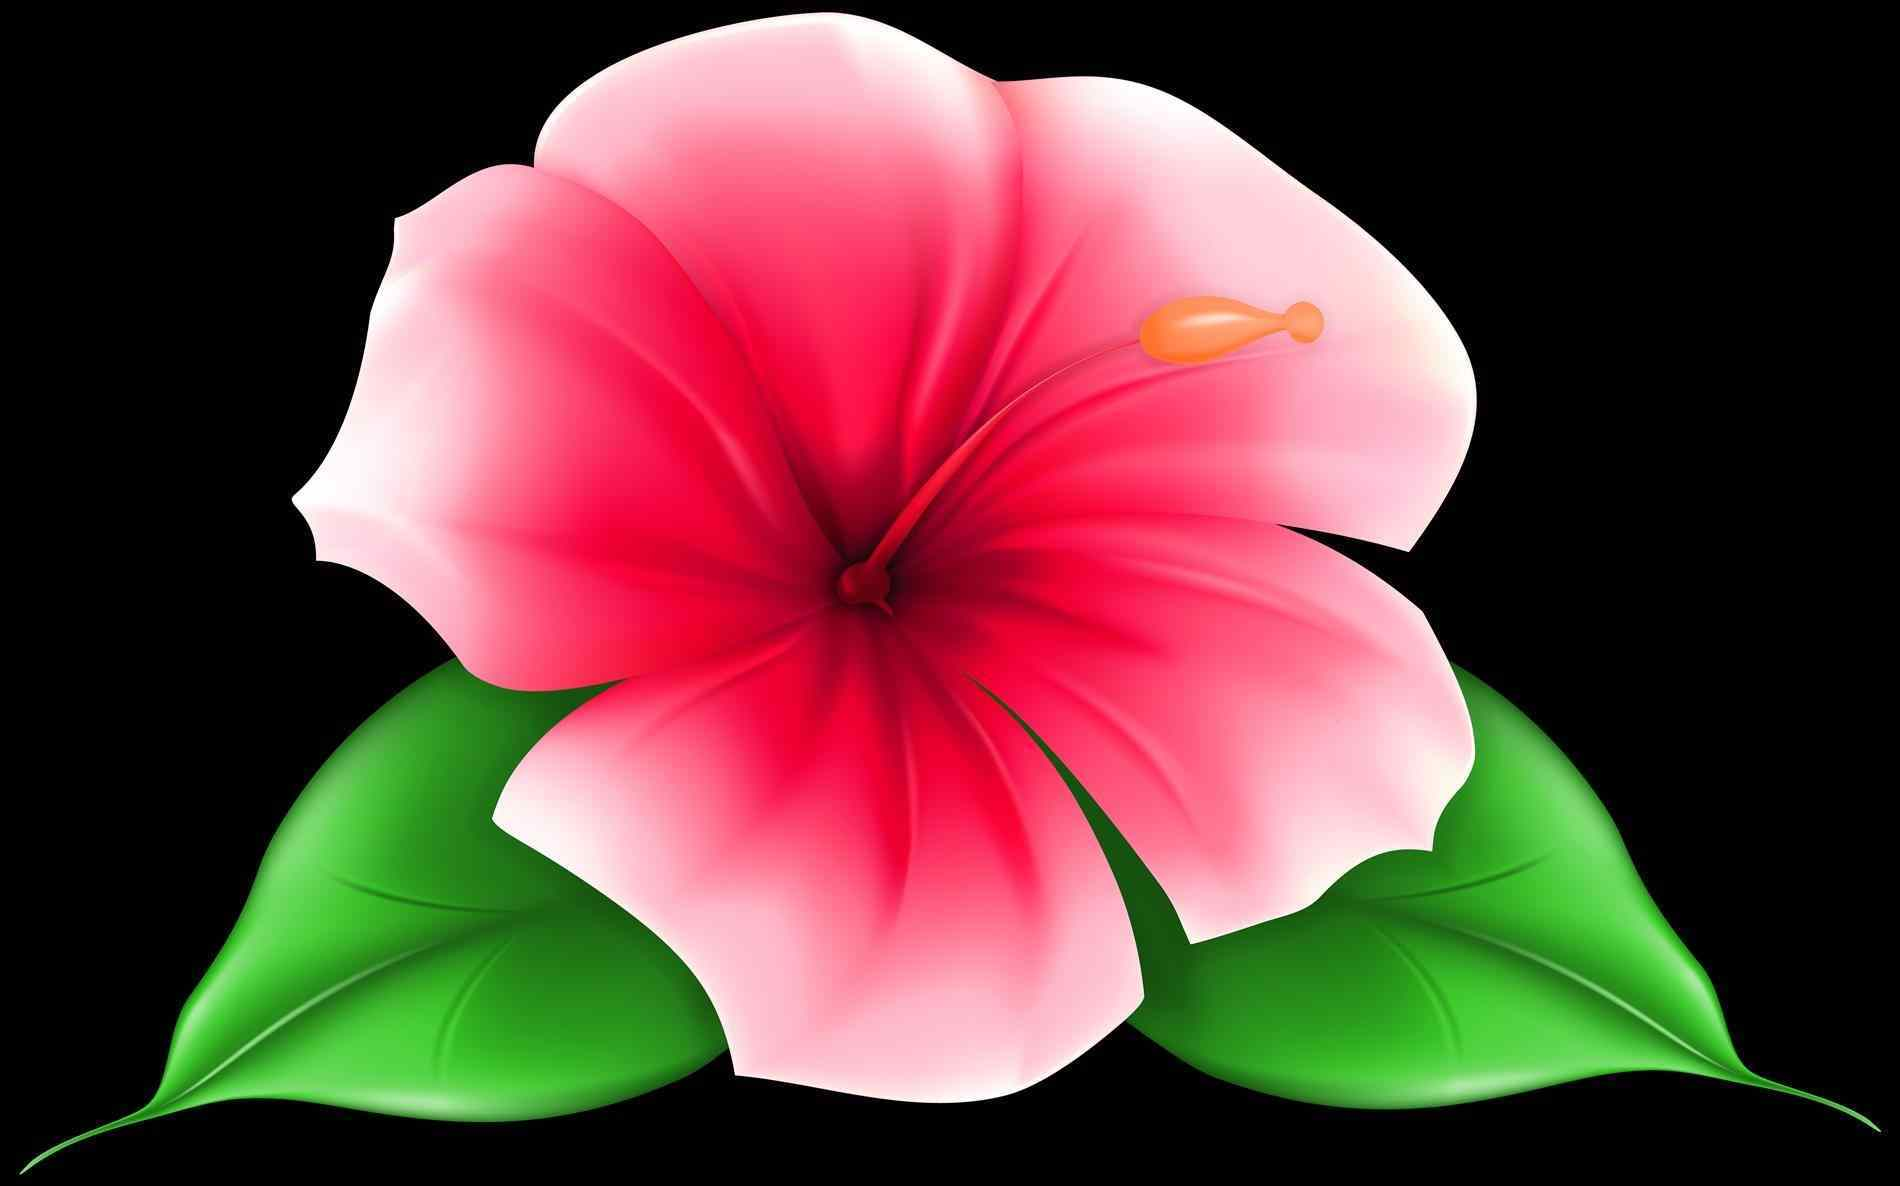 Free printable flower clipart at getdrawings free for personal 1900x1186 download clip art on hawaii flower ley collection hawaii hawaiian izmirmasajfo